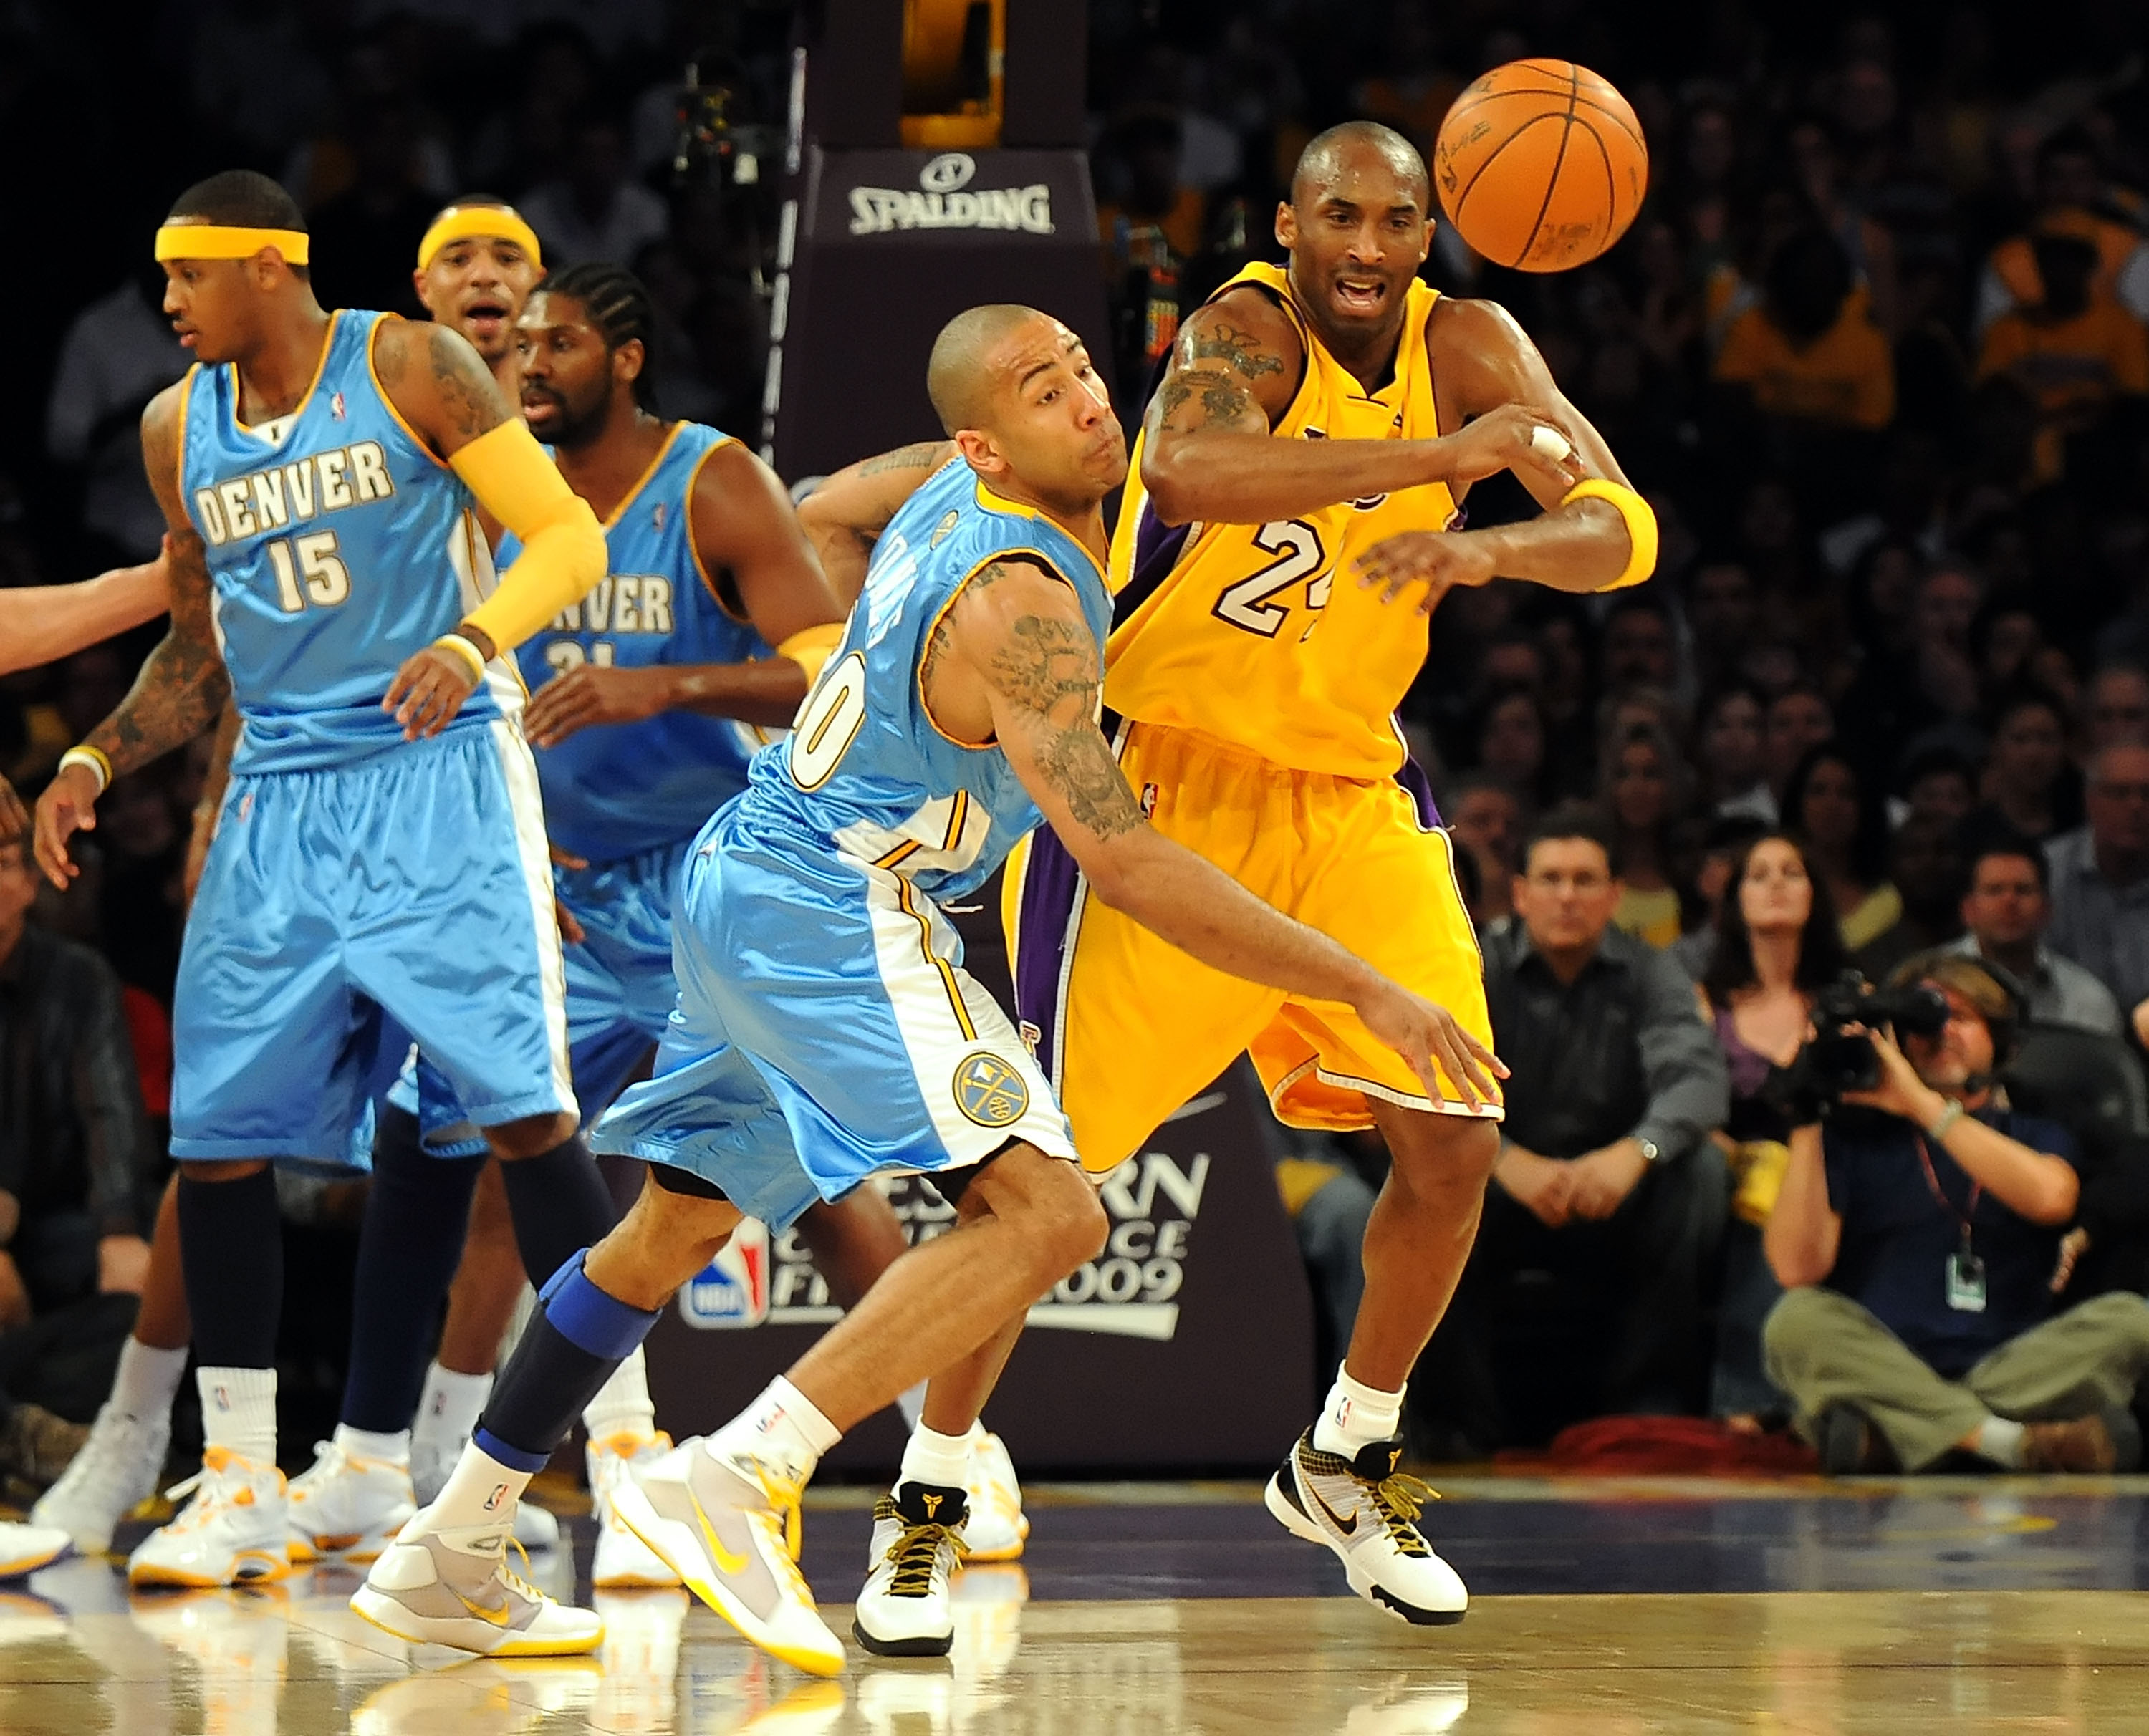 LOS ANGELES, CA - MAY 27:  Dahntay Jones #30 of the Denver Nuggets steals the ball from Kobe Bryant #24 of the Los Angeles Lakers in the first quarter of Game Five of the Western Conference Finals during the 2009 NBA Playoffs at Staples Center on May 27,